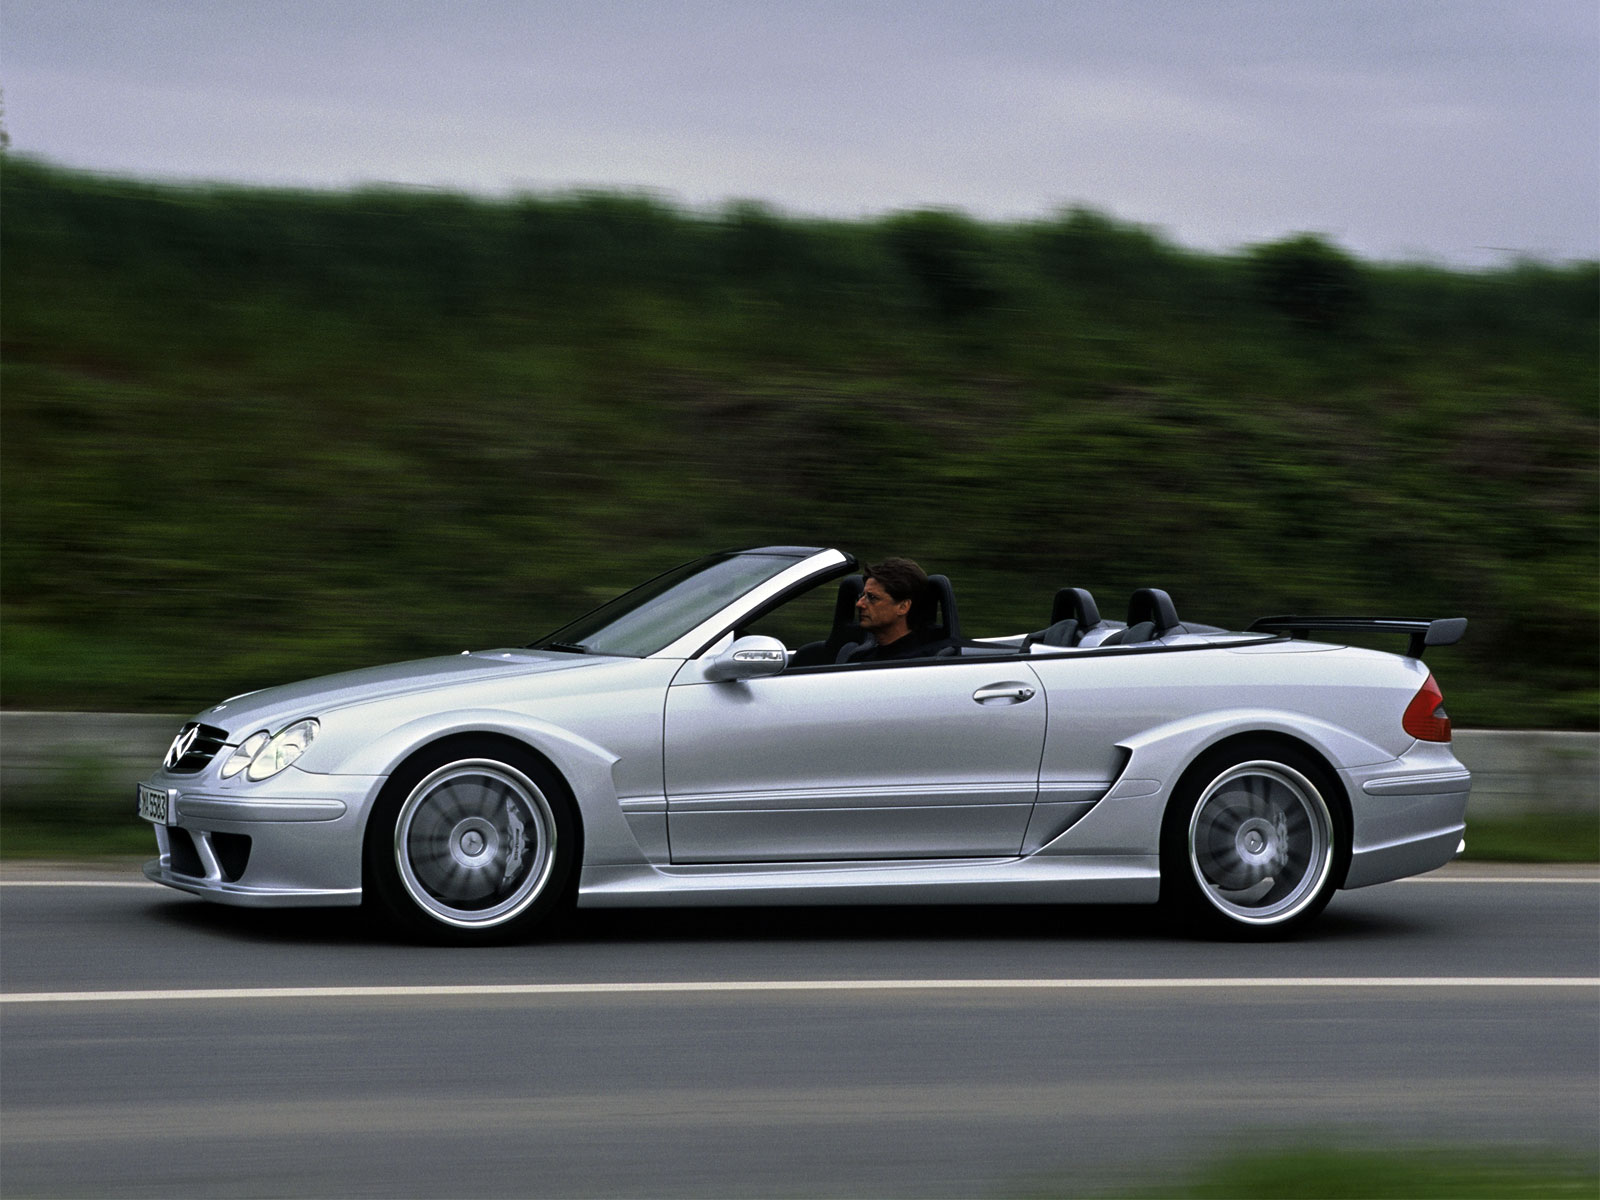 Mercedes benz clk dtm amg technical details history for Mercedes benz amg parts